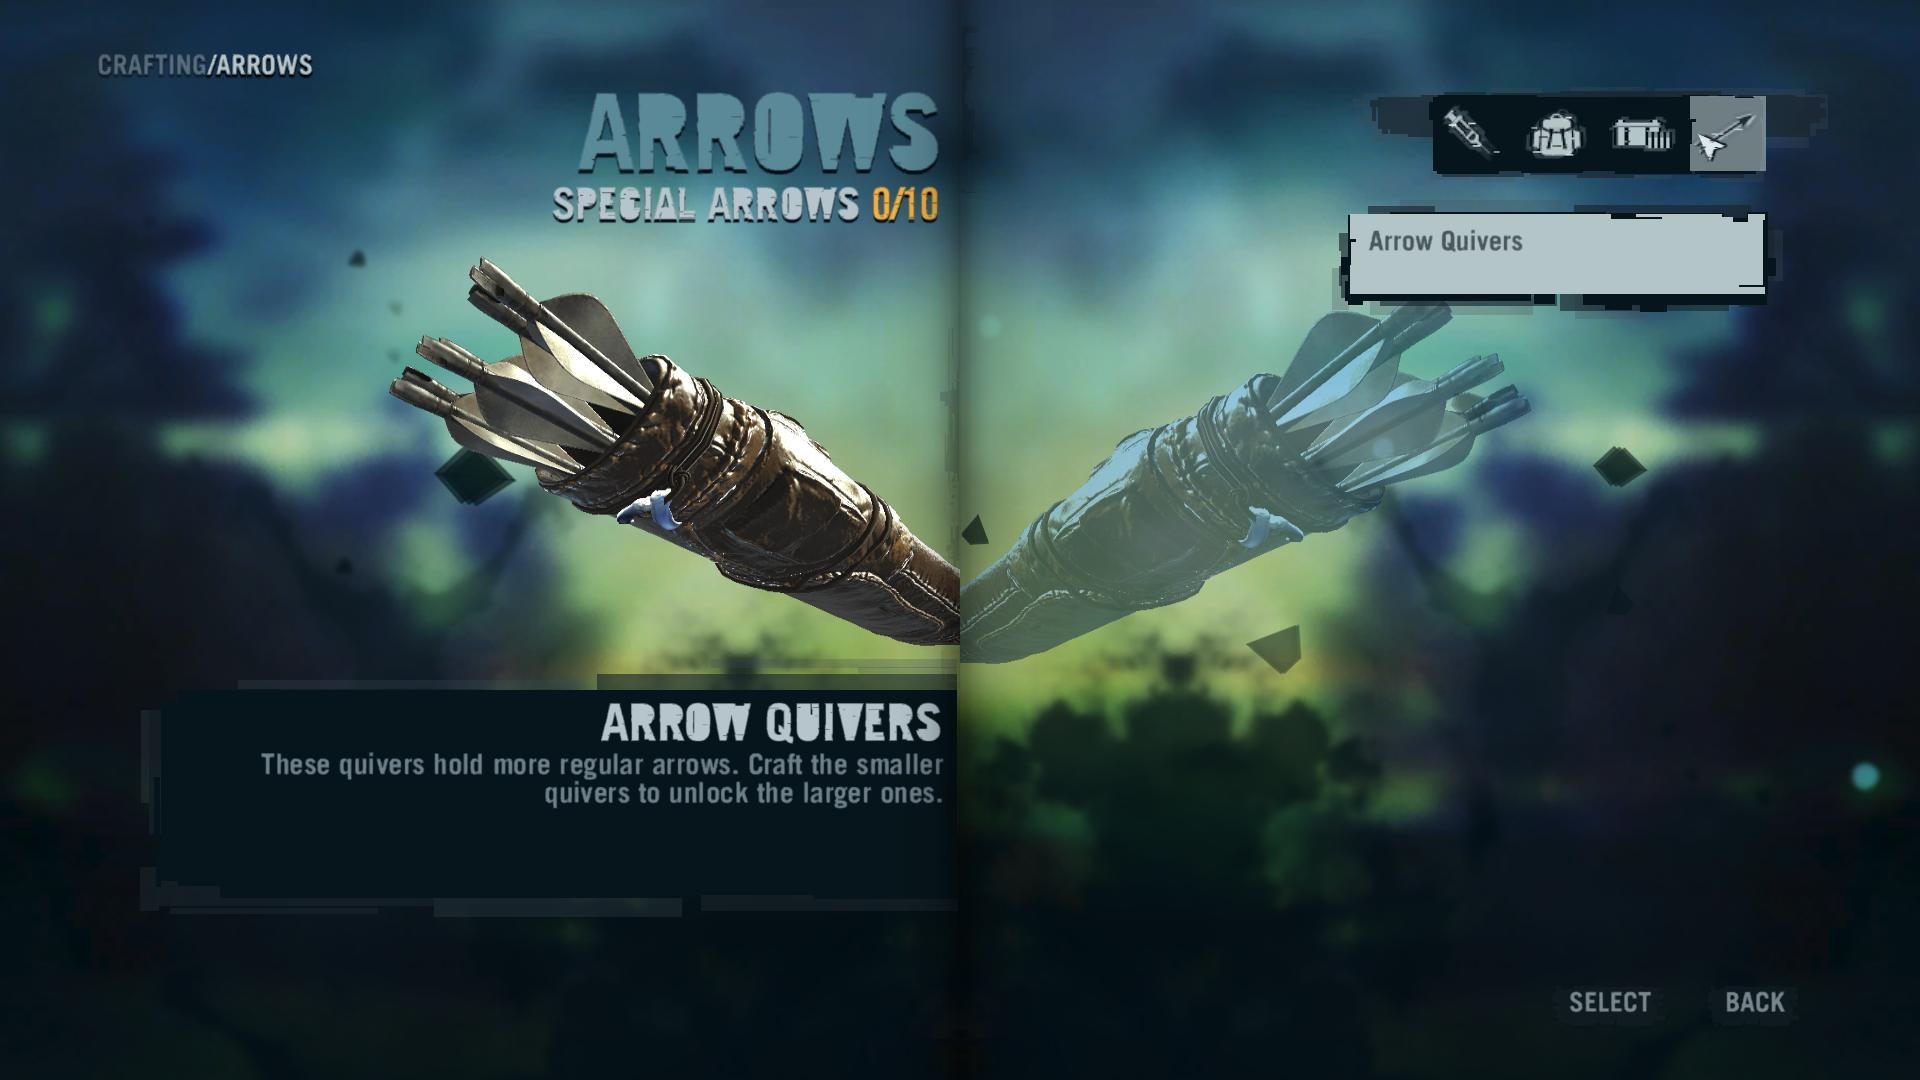 Far Cry 3 Arrows